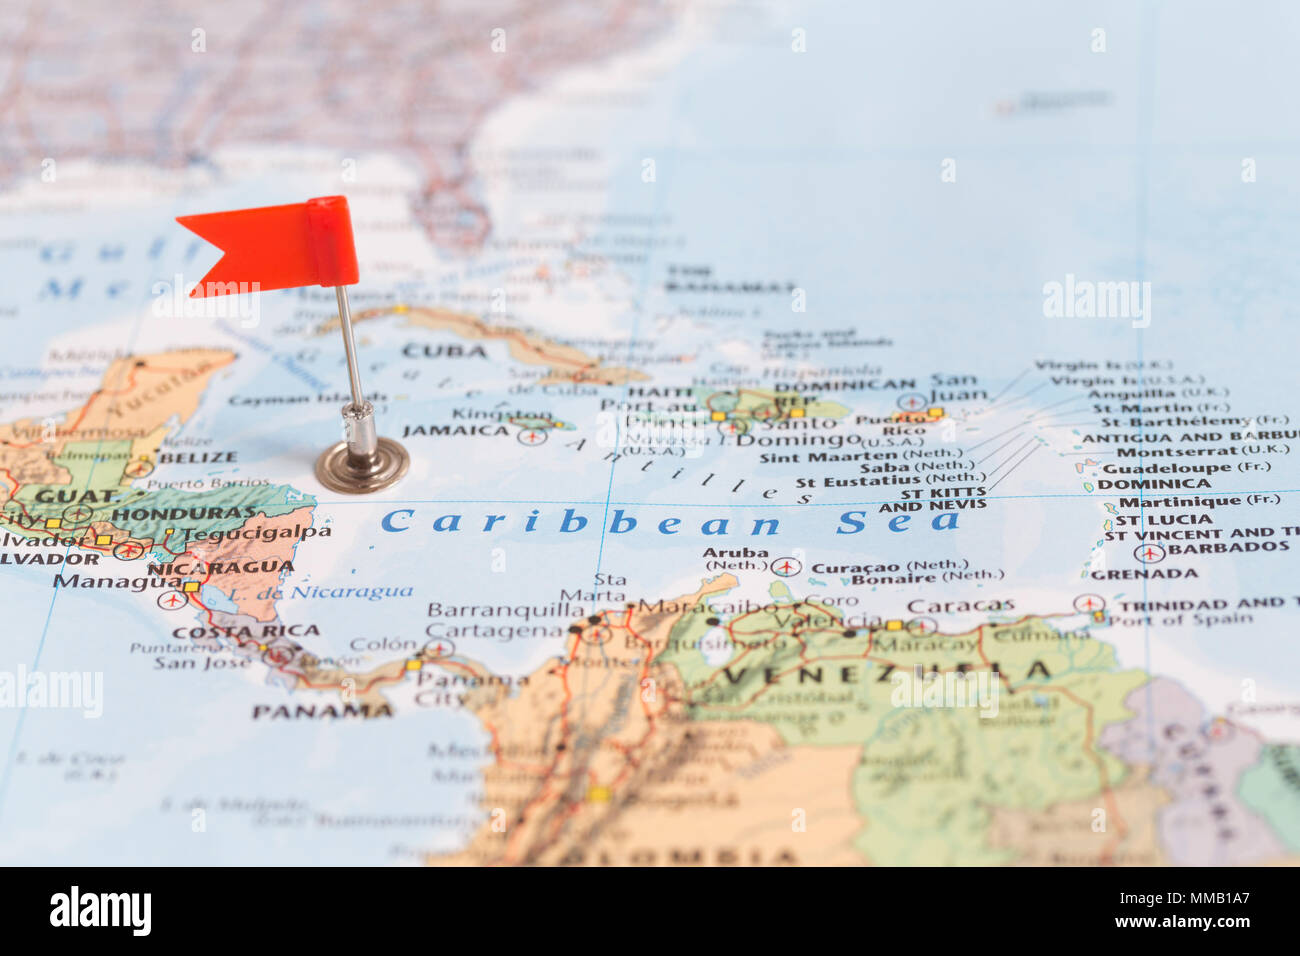 Red sea map stock photos red sea map stock images alamy small red flag marking the caribean sea on a world map stock image gumiabroncs Choice Image